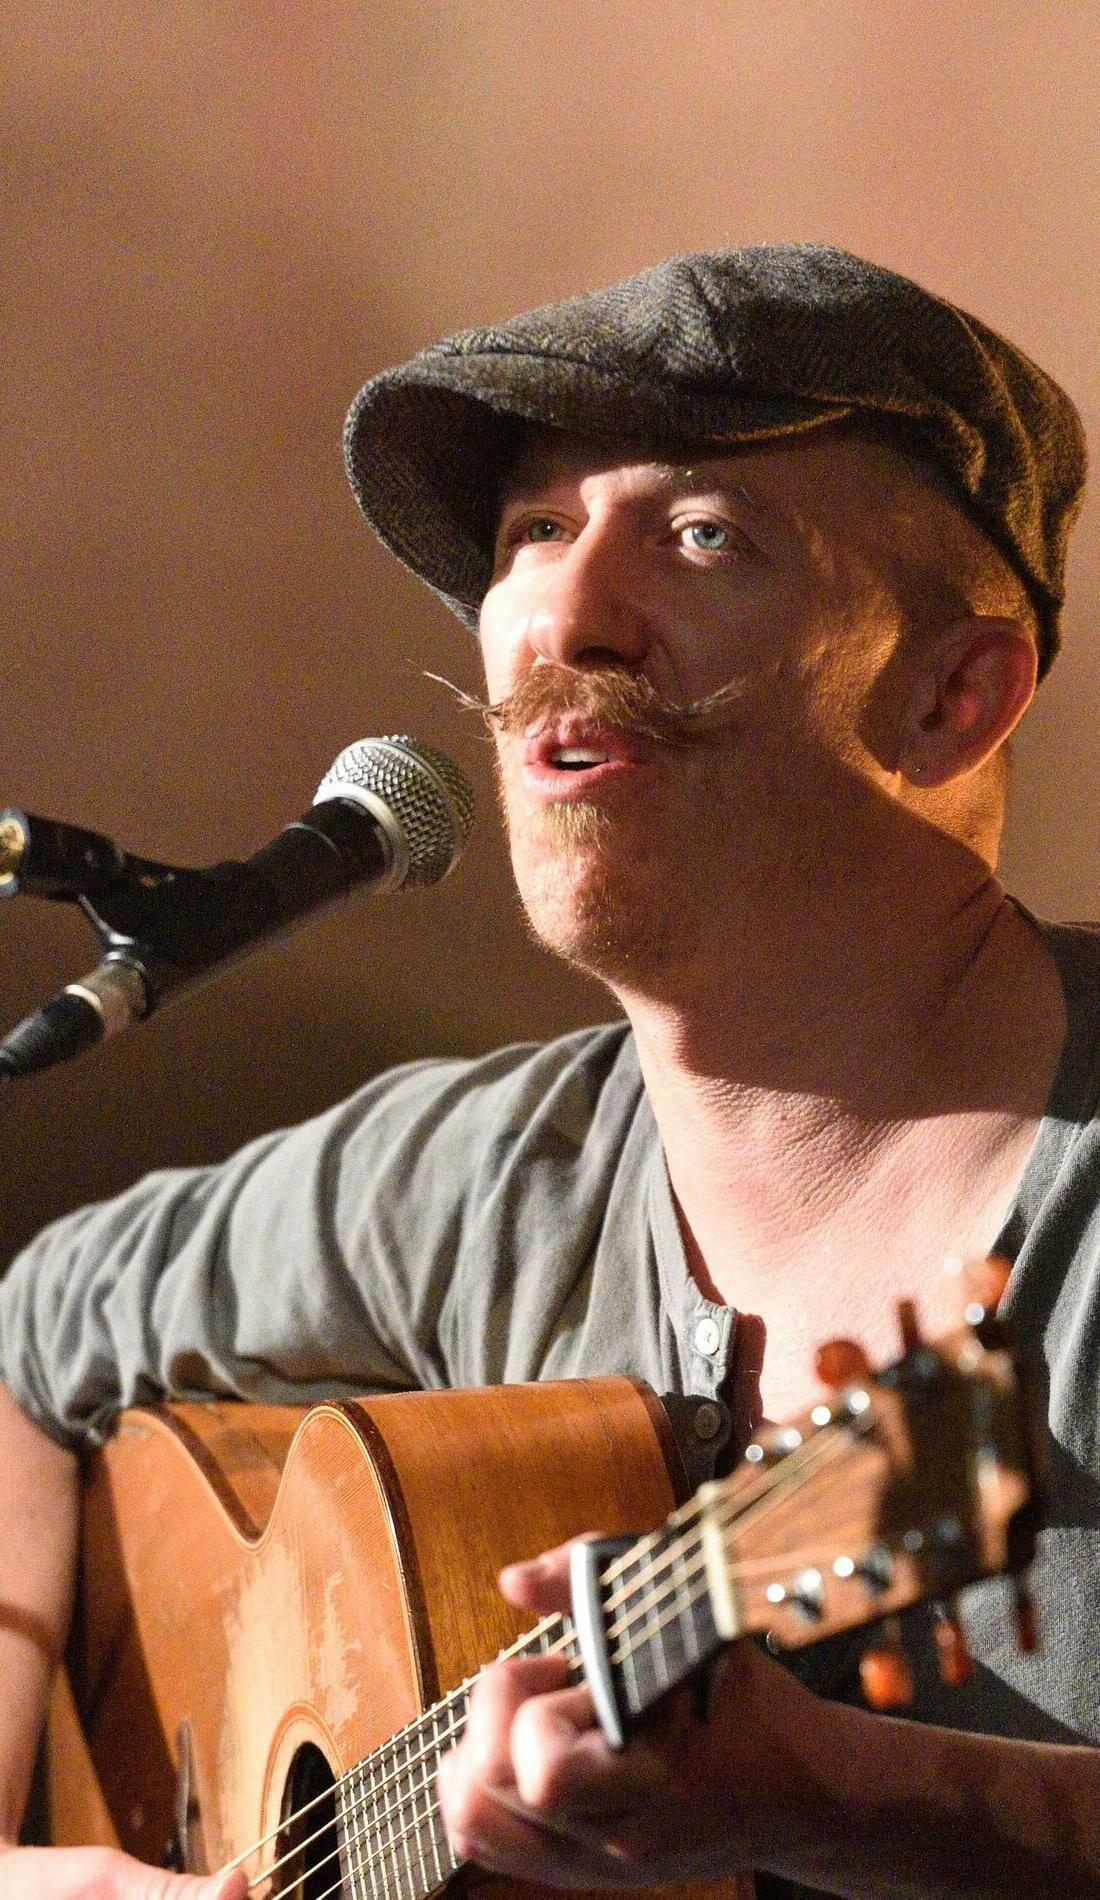 A Foy Vance live event